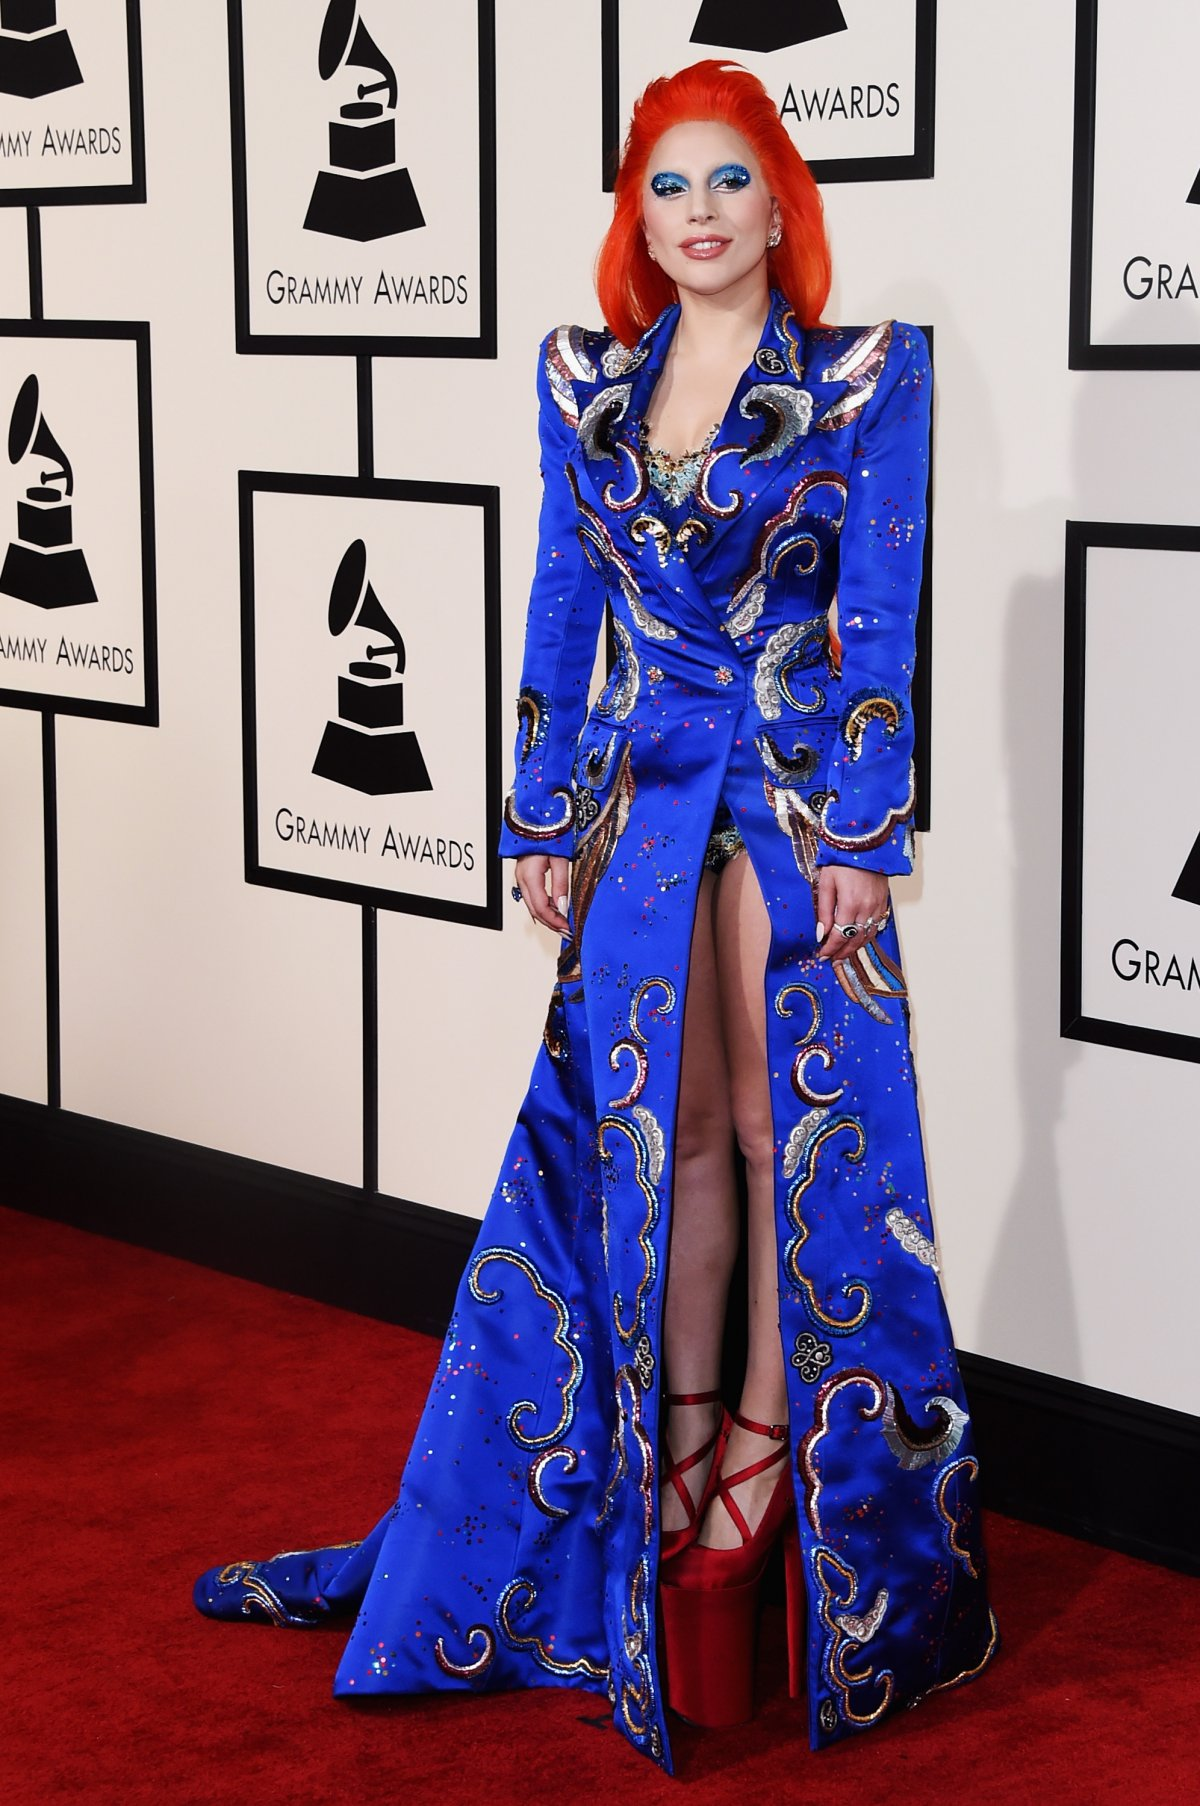 Lady Gaga Grammys 2016 Best Dressed Celebrities